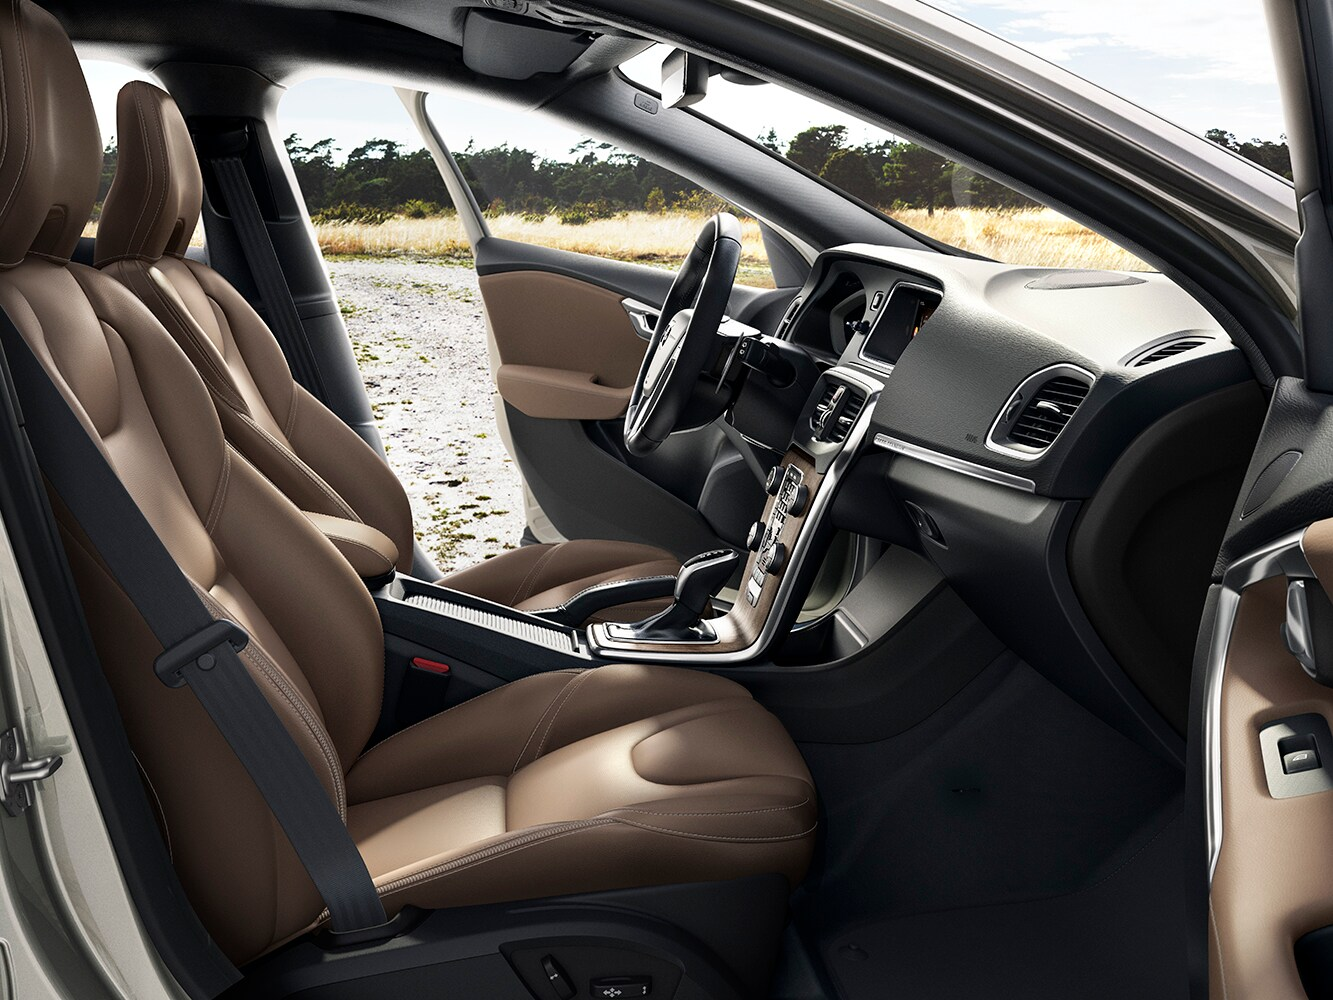 Interior view with charcoal headlining and part leather upholstered seats in the Volvo V40 Cross Country